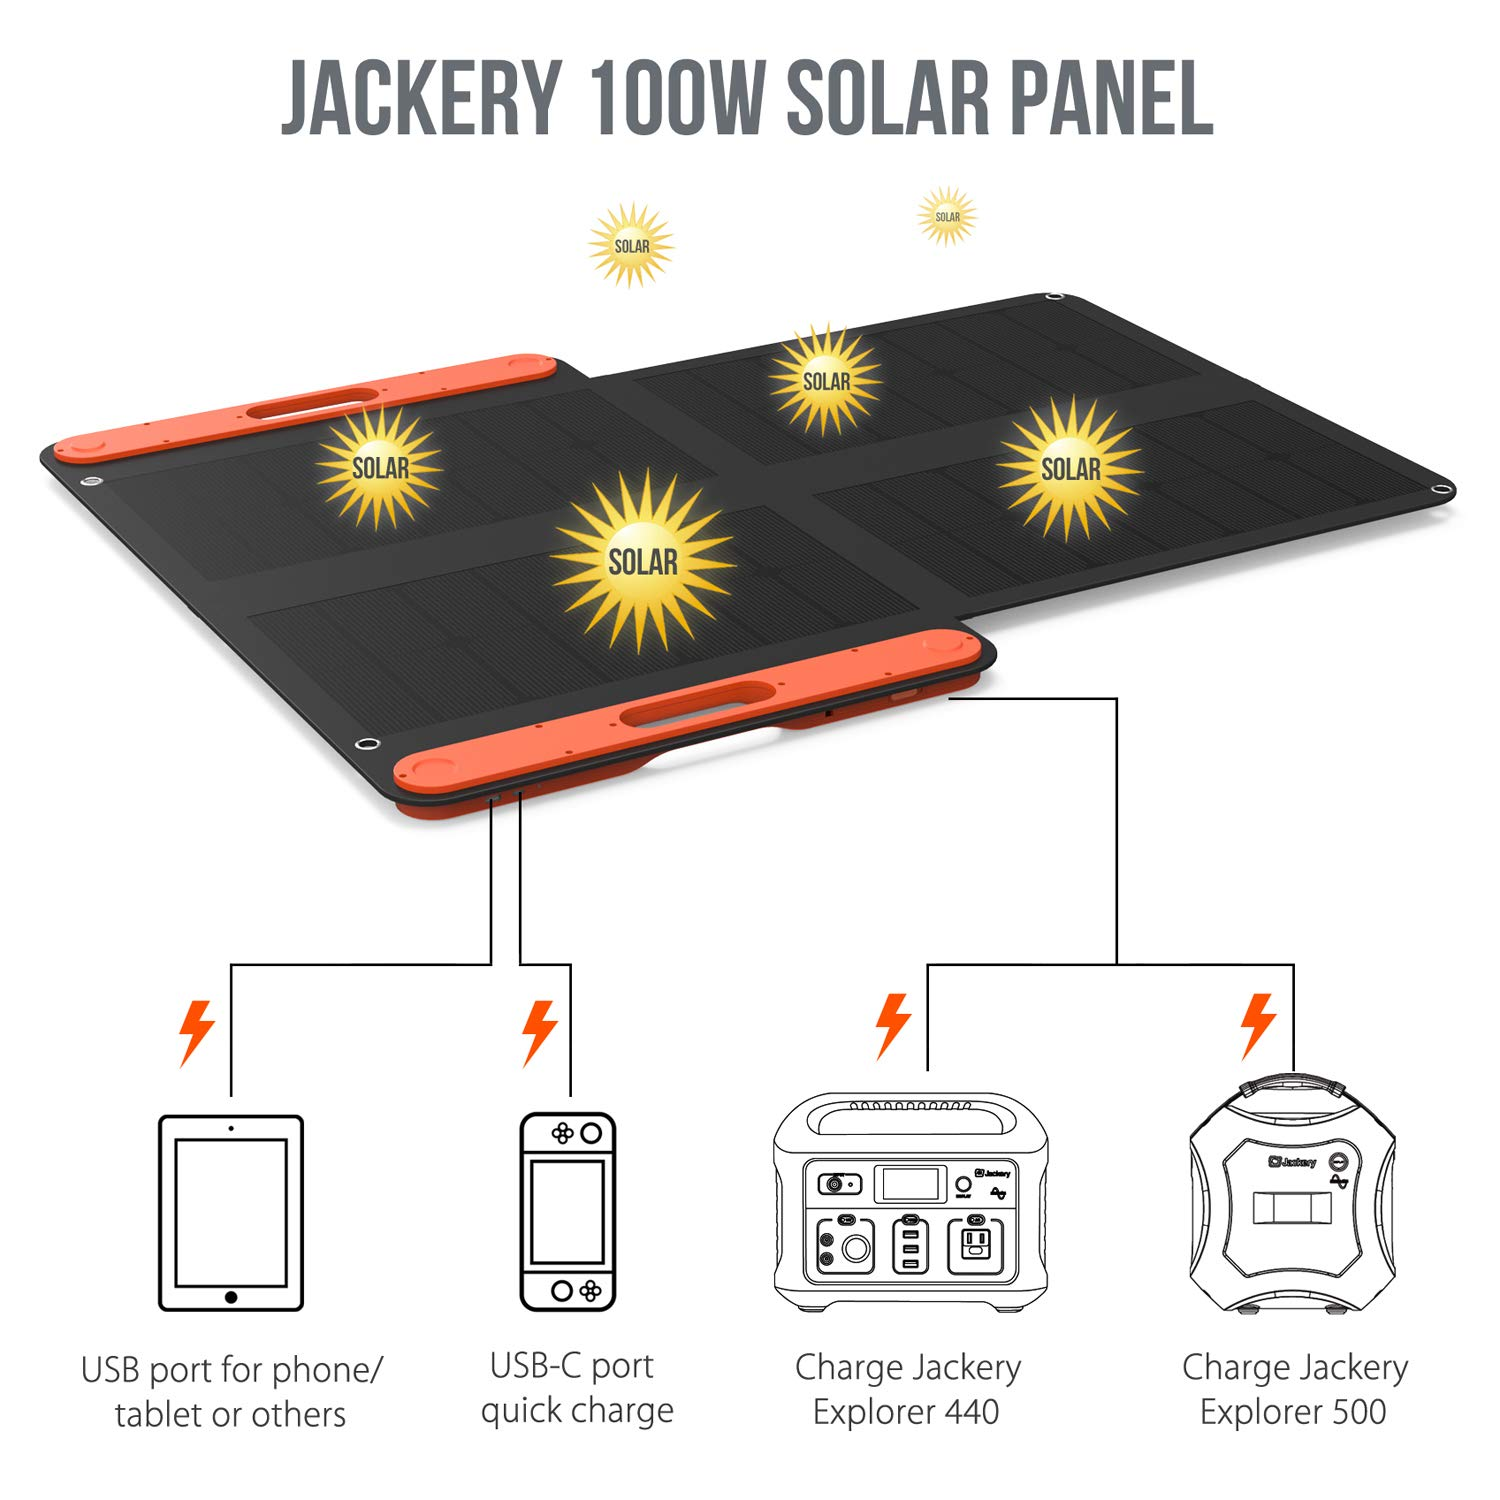 Jackery Portable Solar Panel 100W Explorer 440 and Powerpro 500, Foldable Solar Charger Additional USB C and USB Output for Phones Tablet Camera Camping Outdoor by Jackery (Image #3)